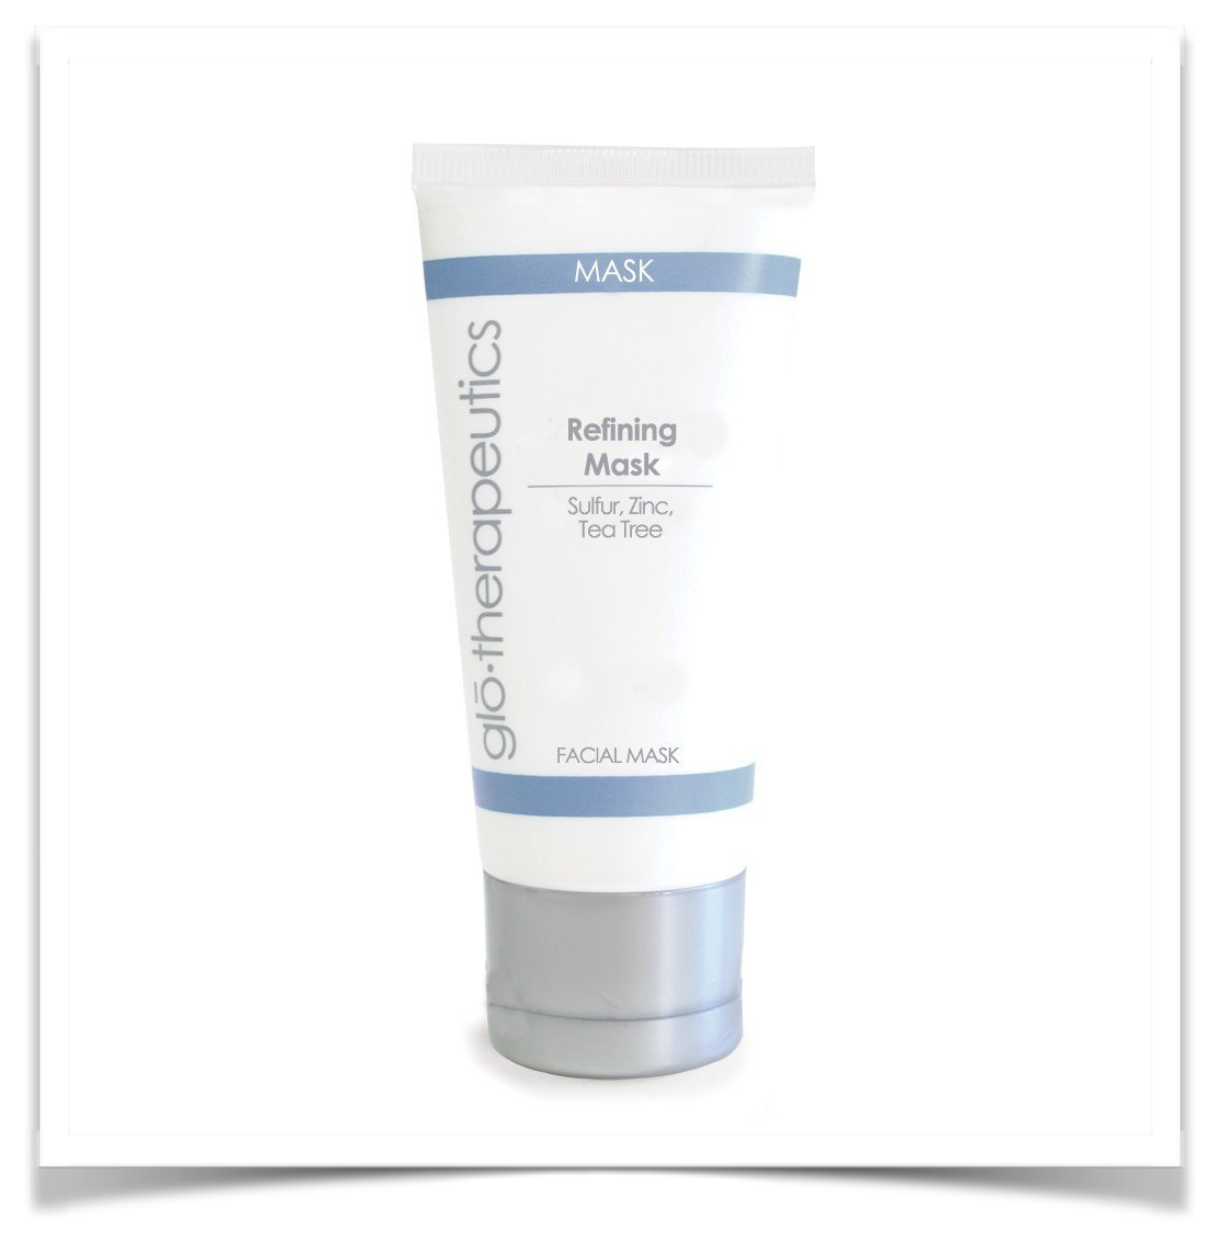 Glo-therapeutics Refining Mask